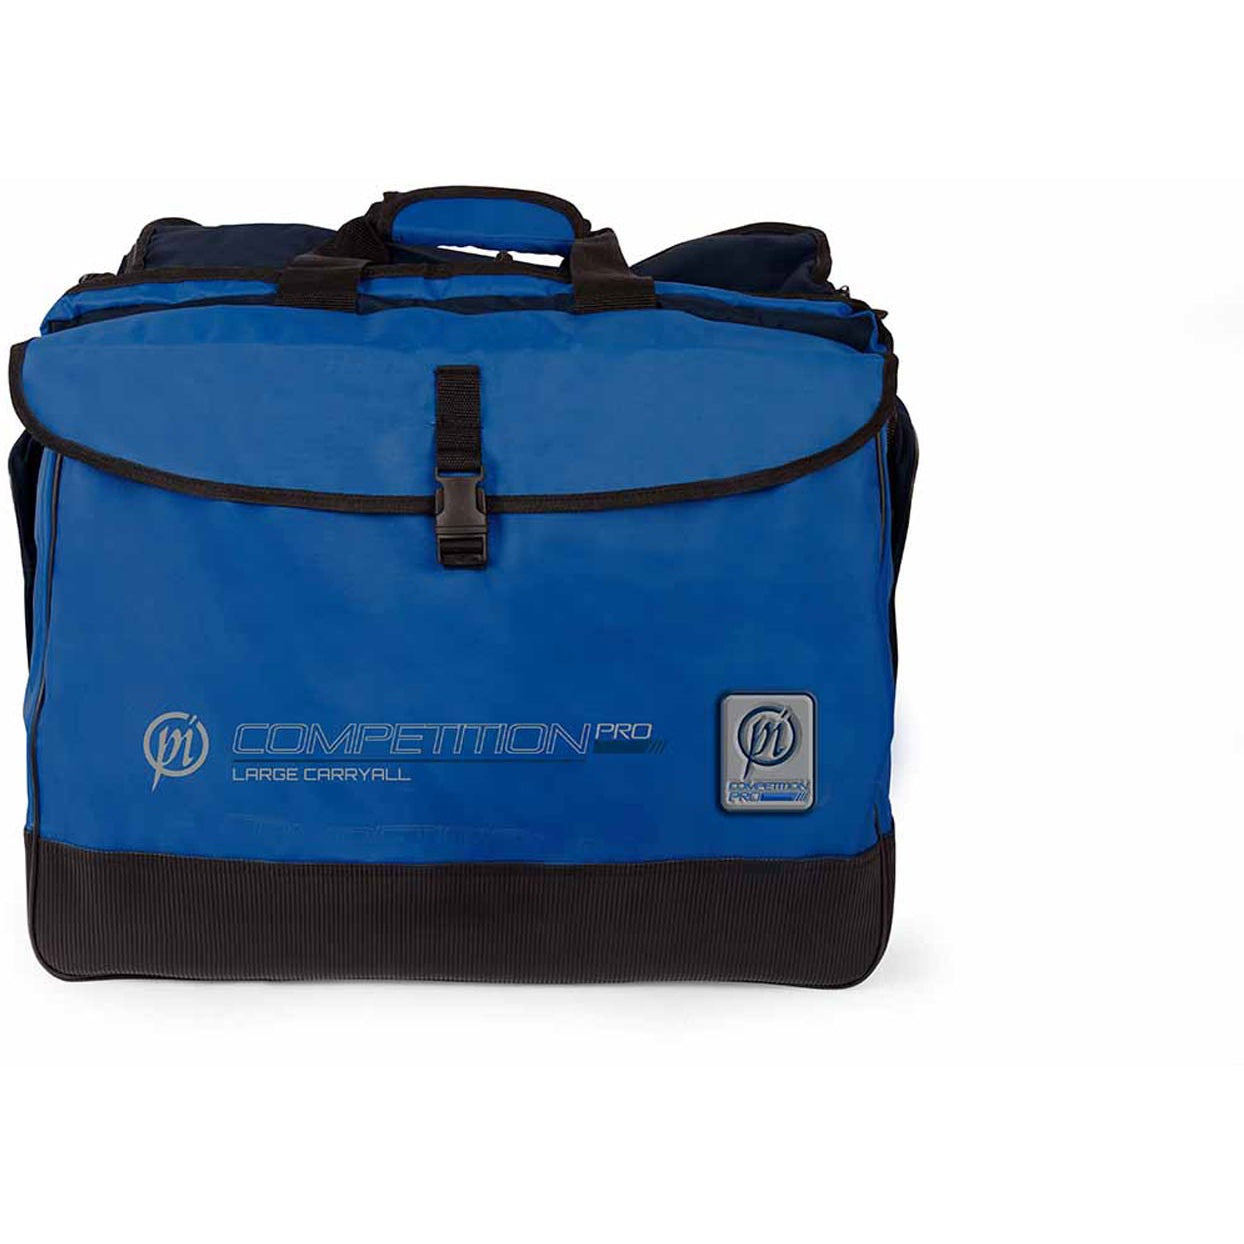 Preston Innovations PRO Competition Large Holdall